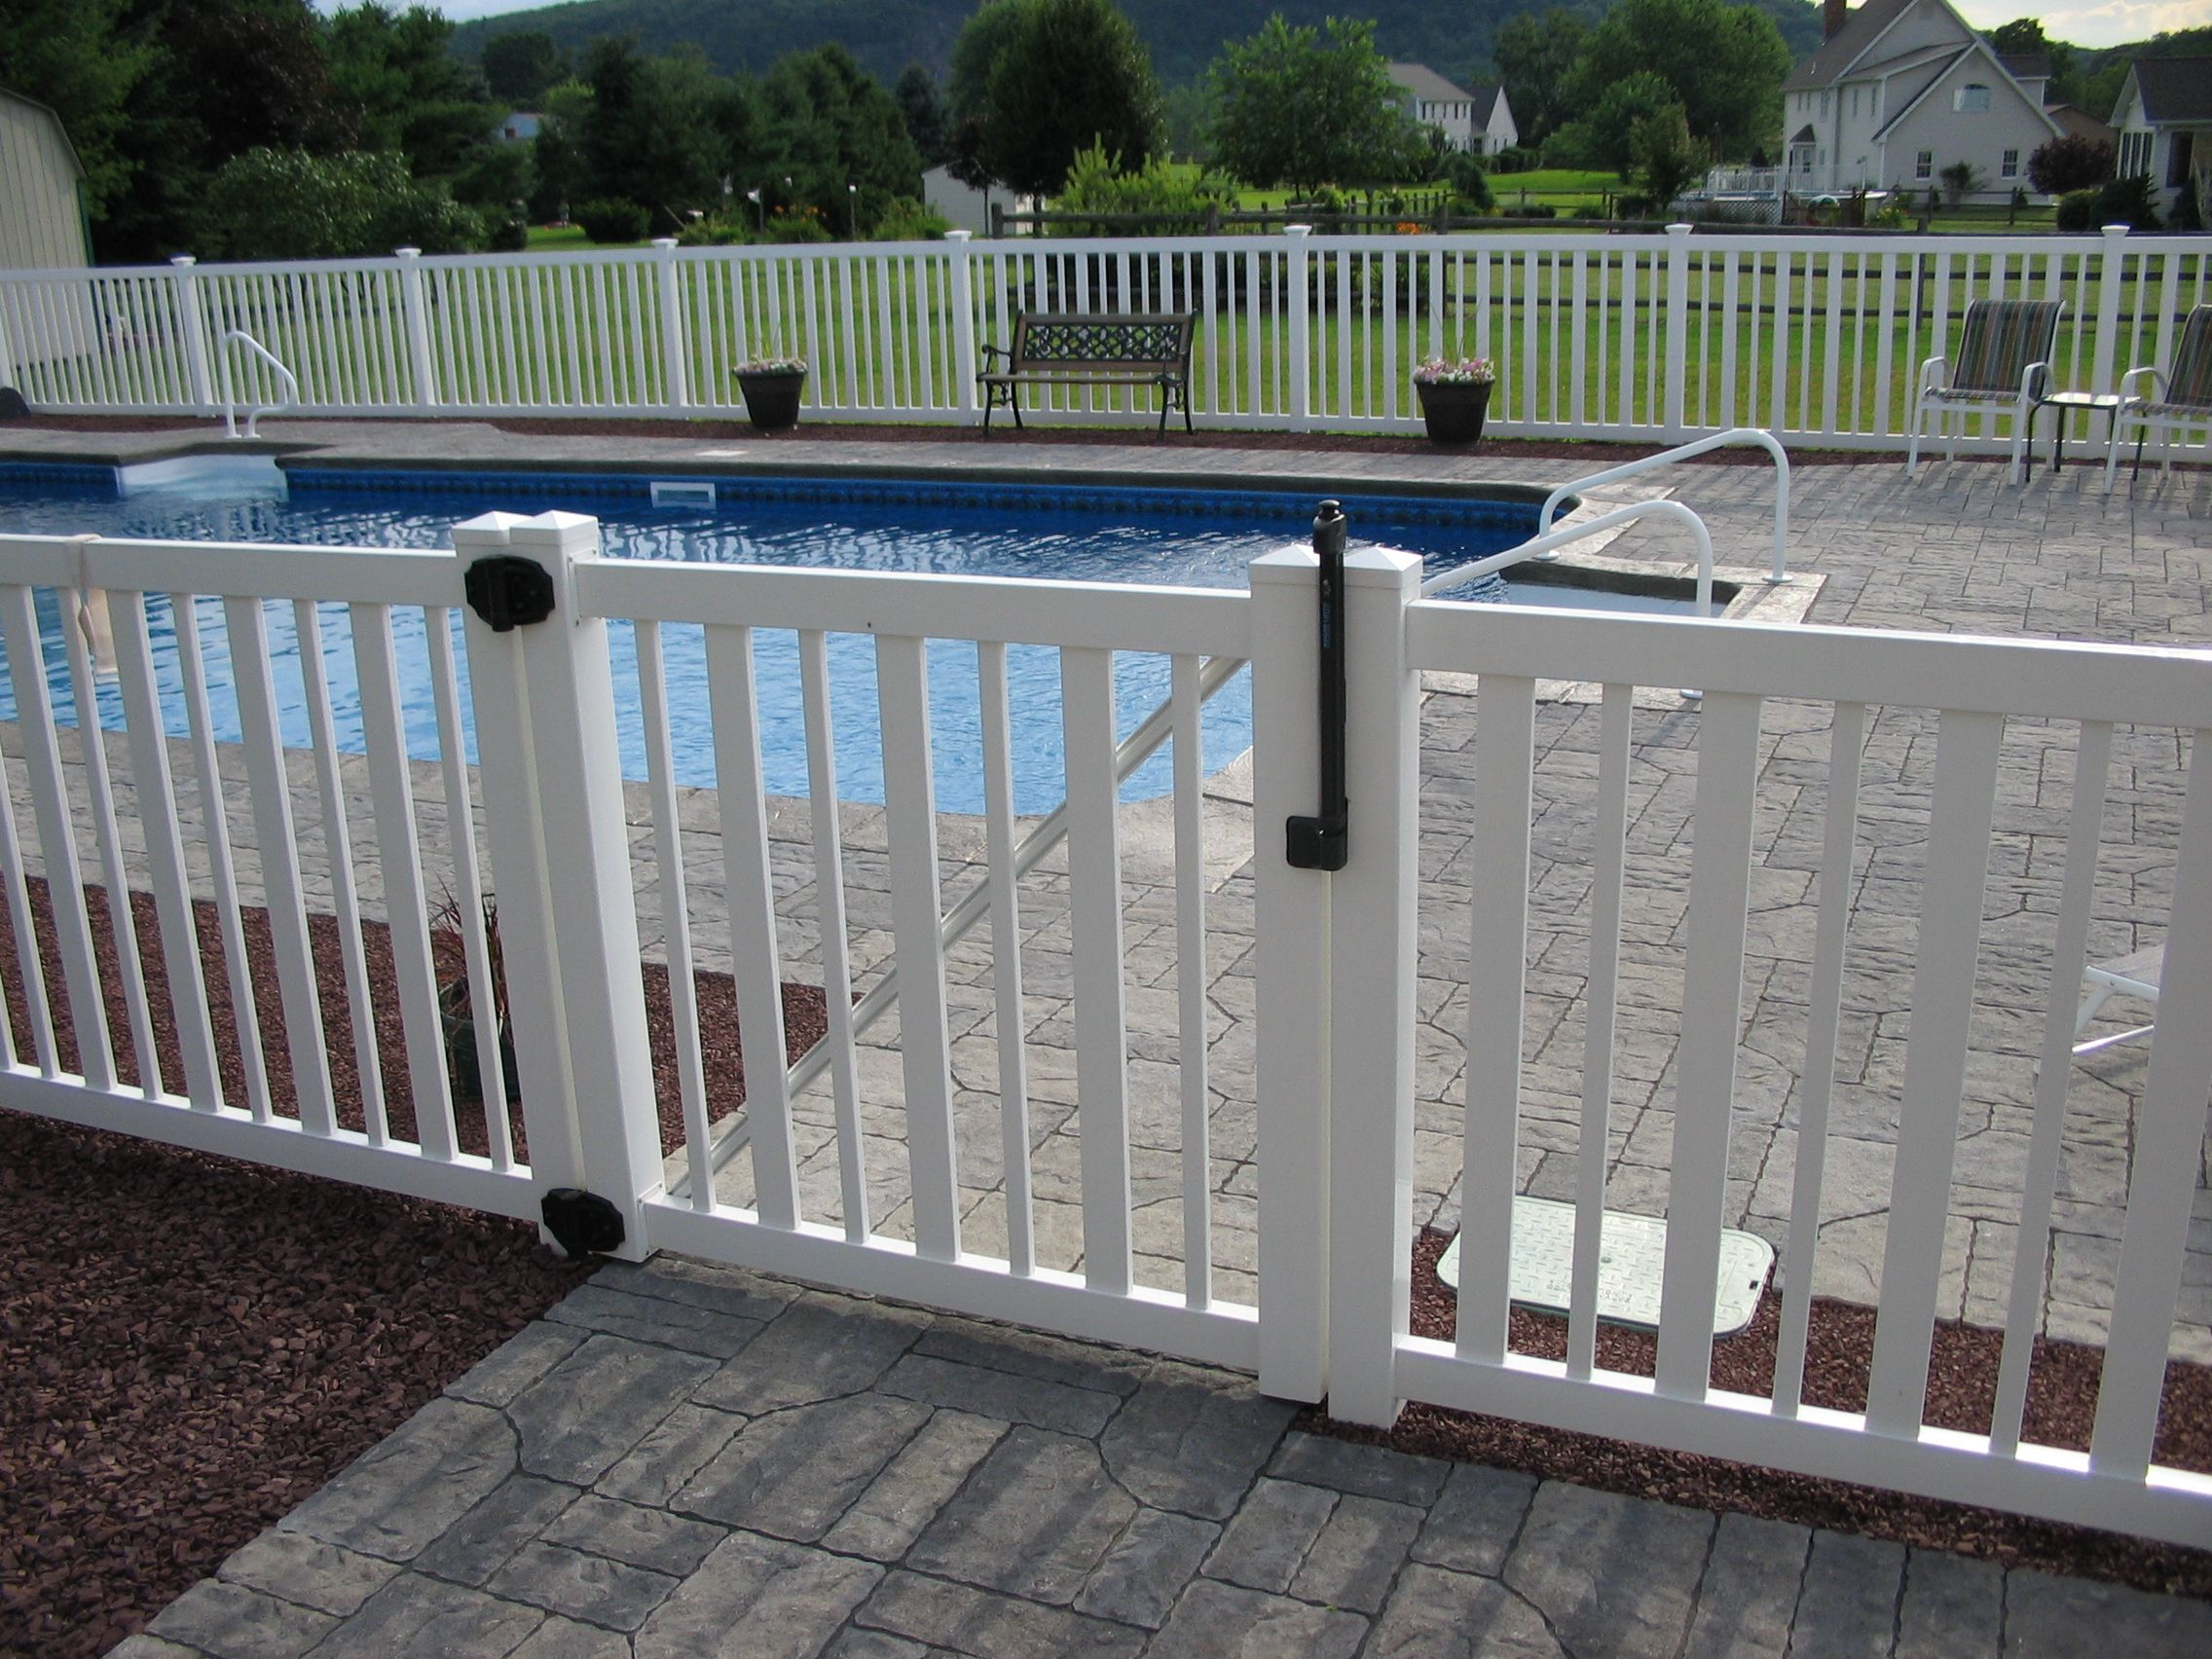 Top Pull Latch On A Pool Fence Keeps Your Little Ones Safe Weatherables Atlantis Pool Fence